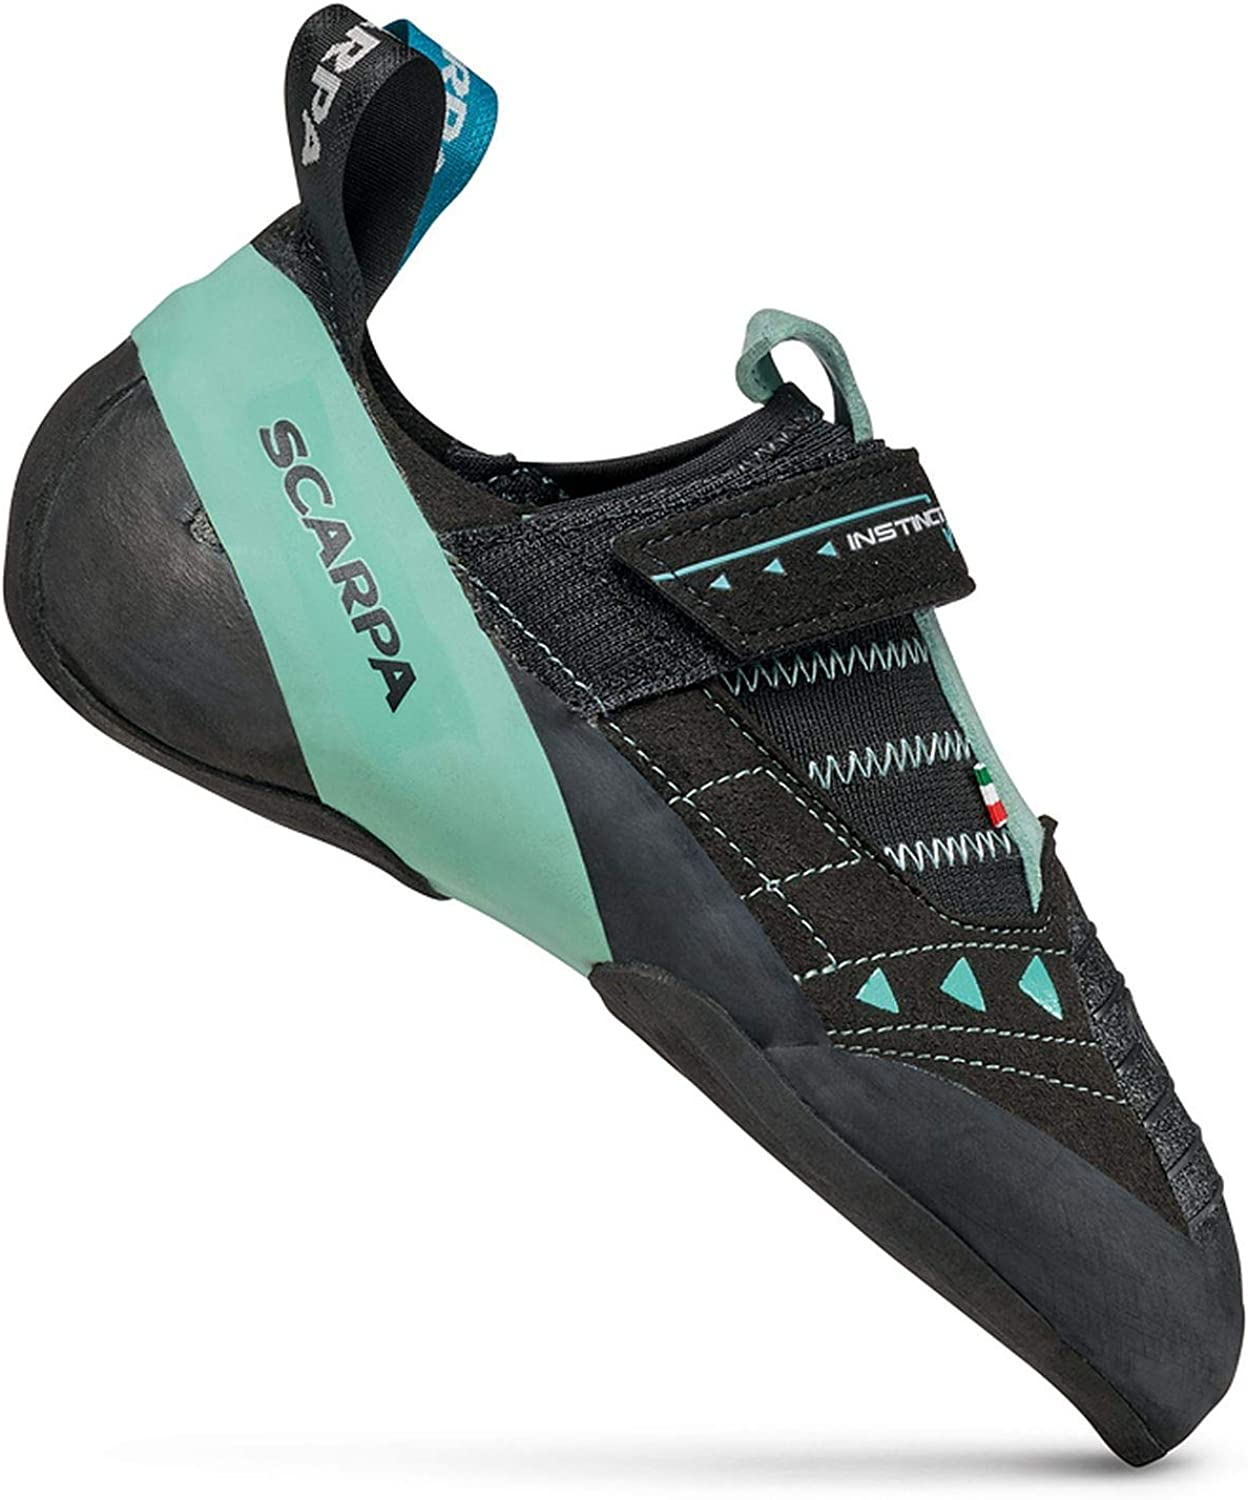 SCARPA At the price Women's Instinct VS Rock Shoes for Climbin Challenge the lowest price Climbing Sport